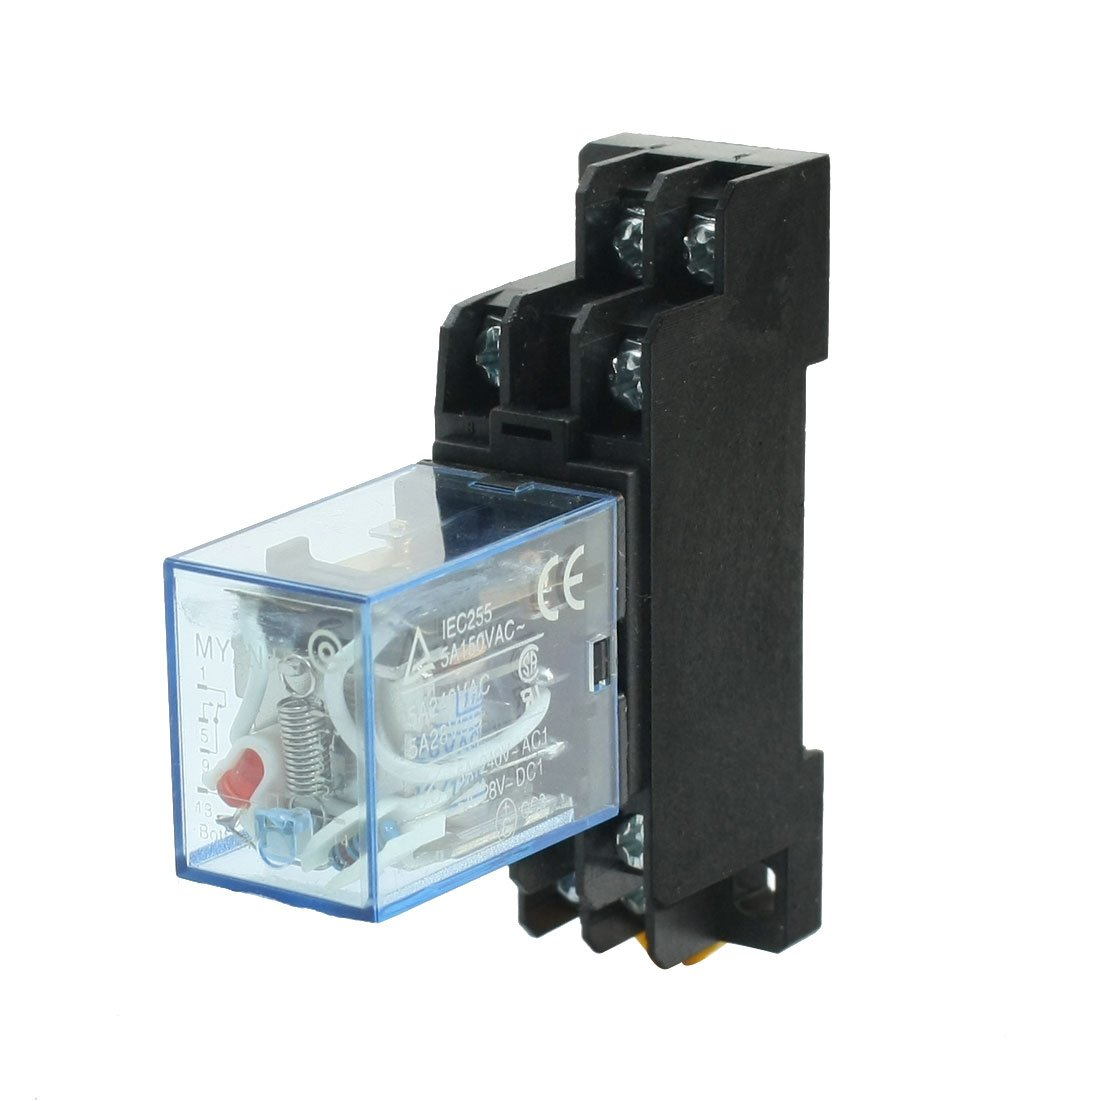 uxcell AC110/120V Coil Red Pilot Lamp DPDT Power Relay 5A w DIN Rail Socket a13122300ux0037